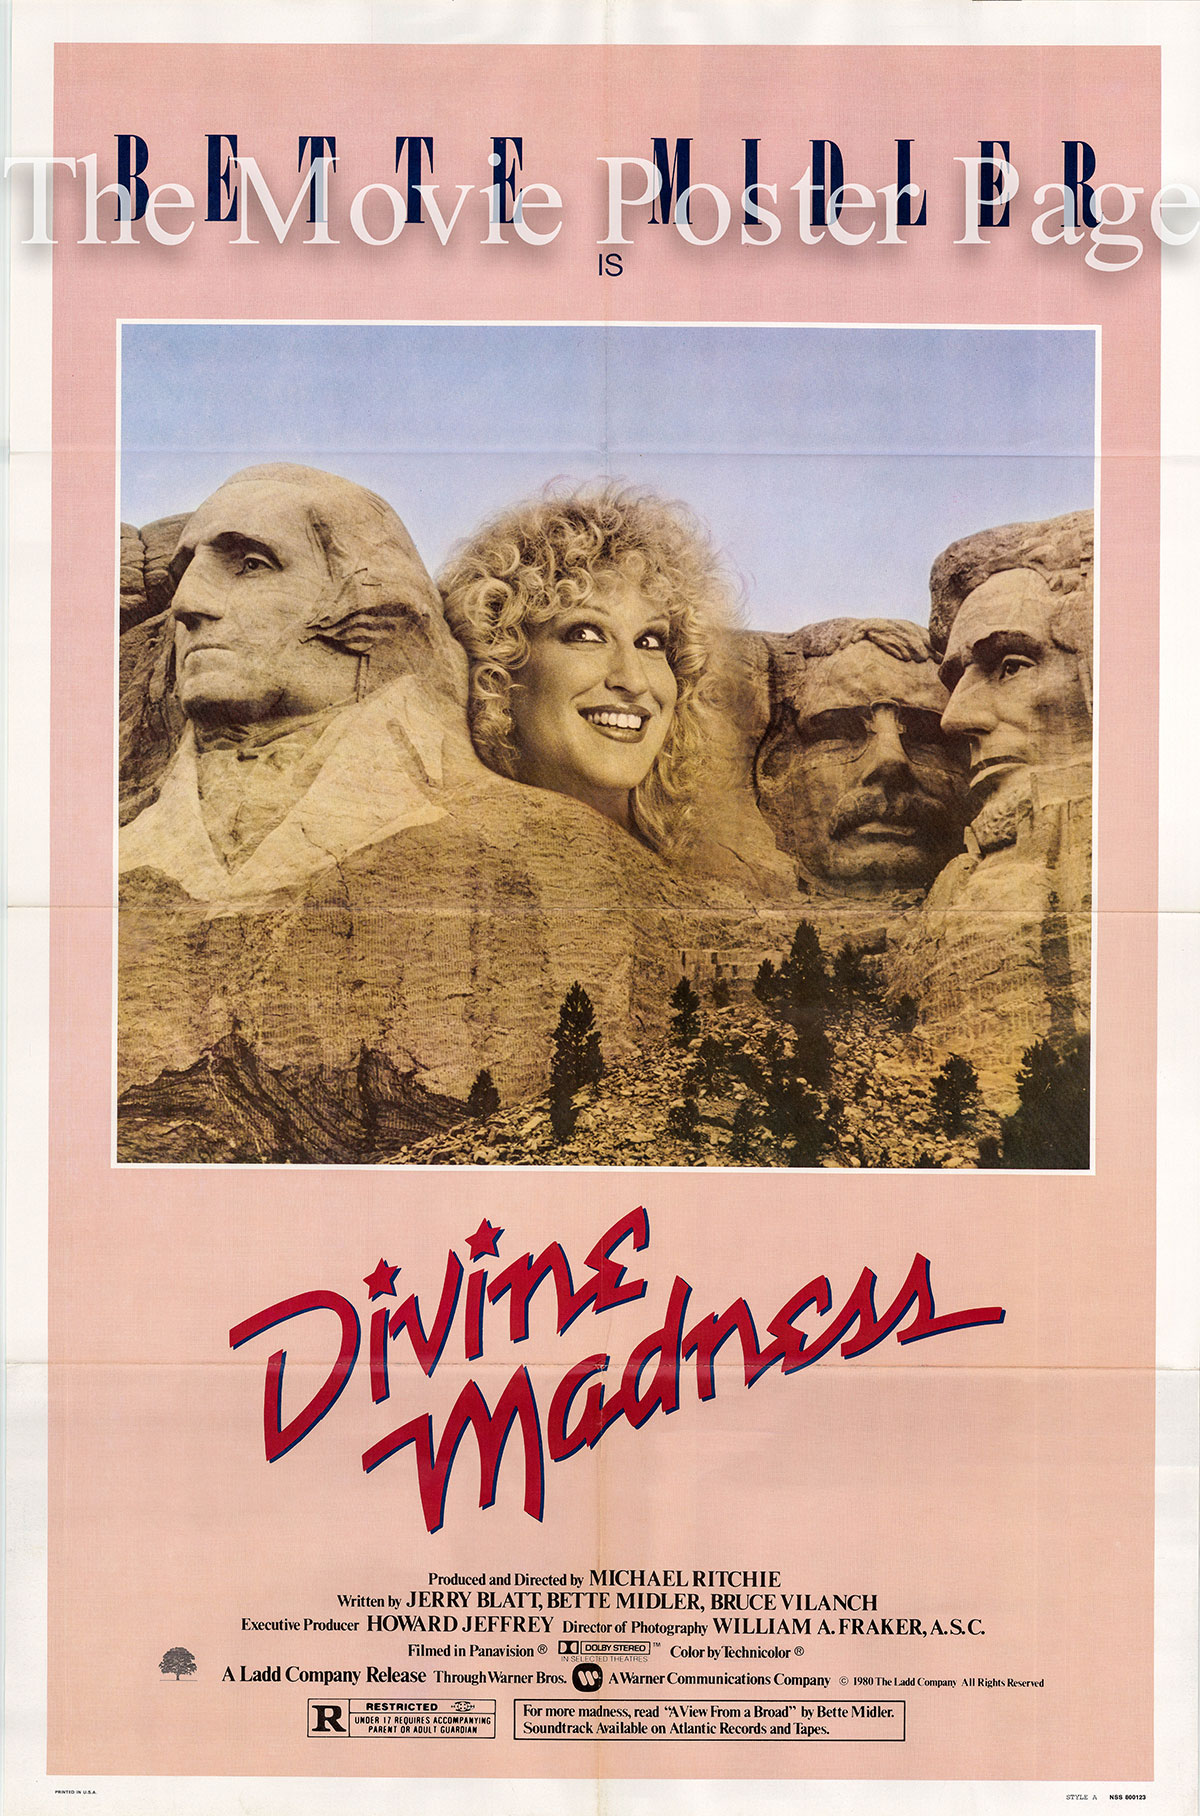 Pictured is a US one-sheet for the 1980 Michael Richie film Divine Madness starring Bette Midler.